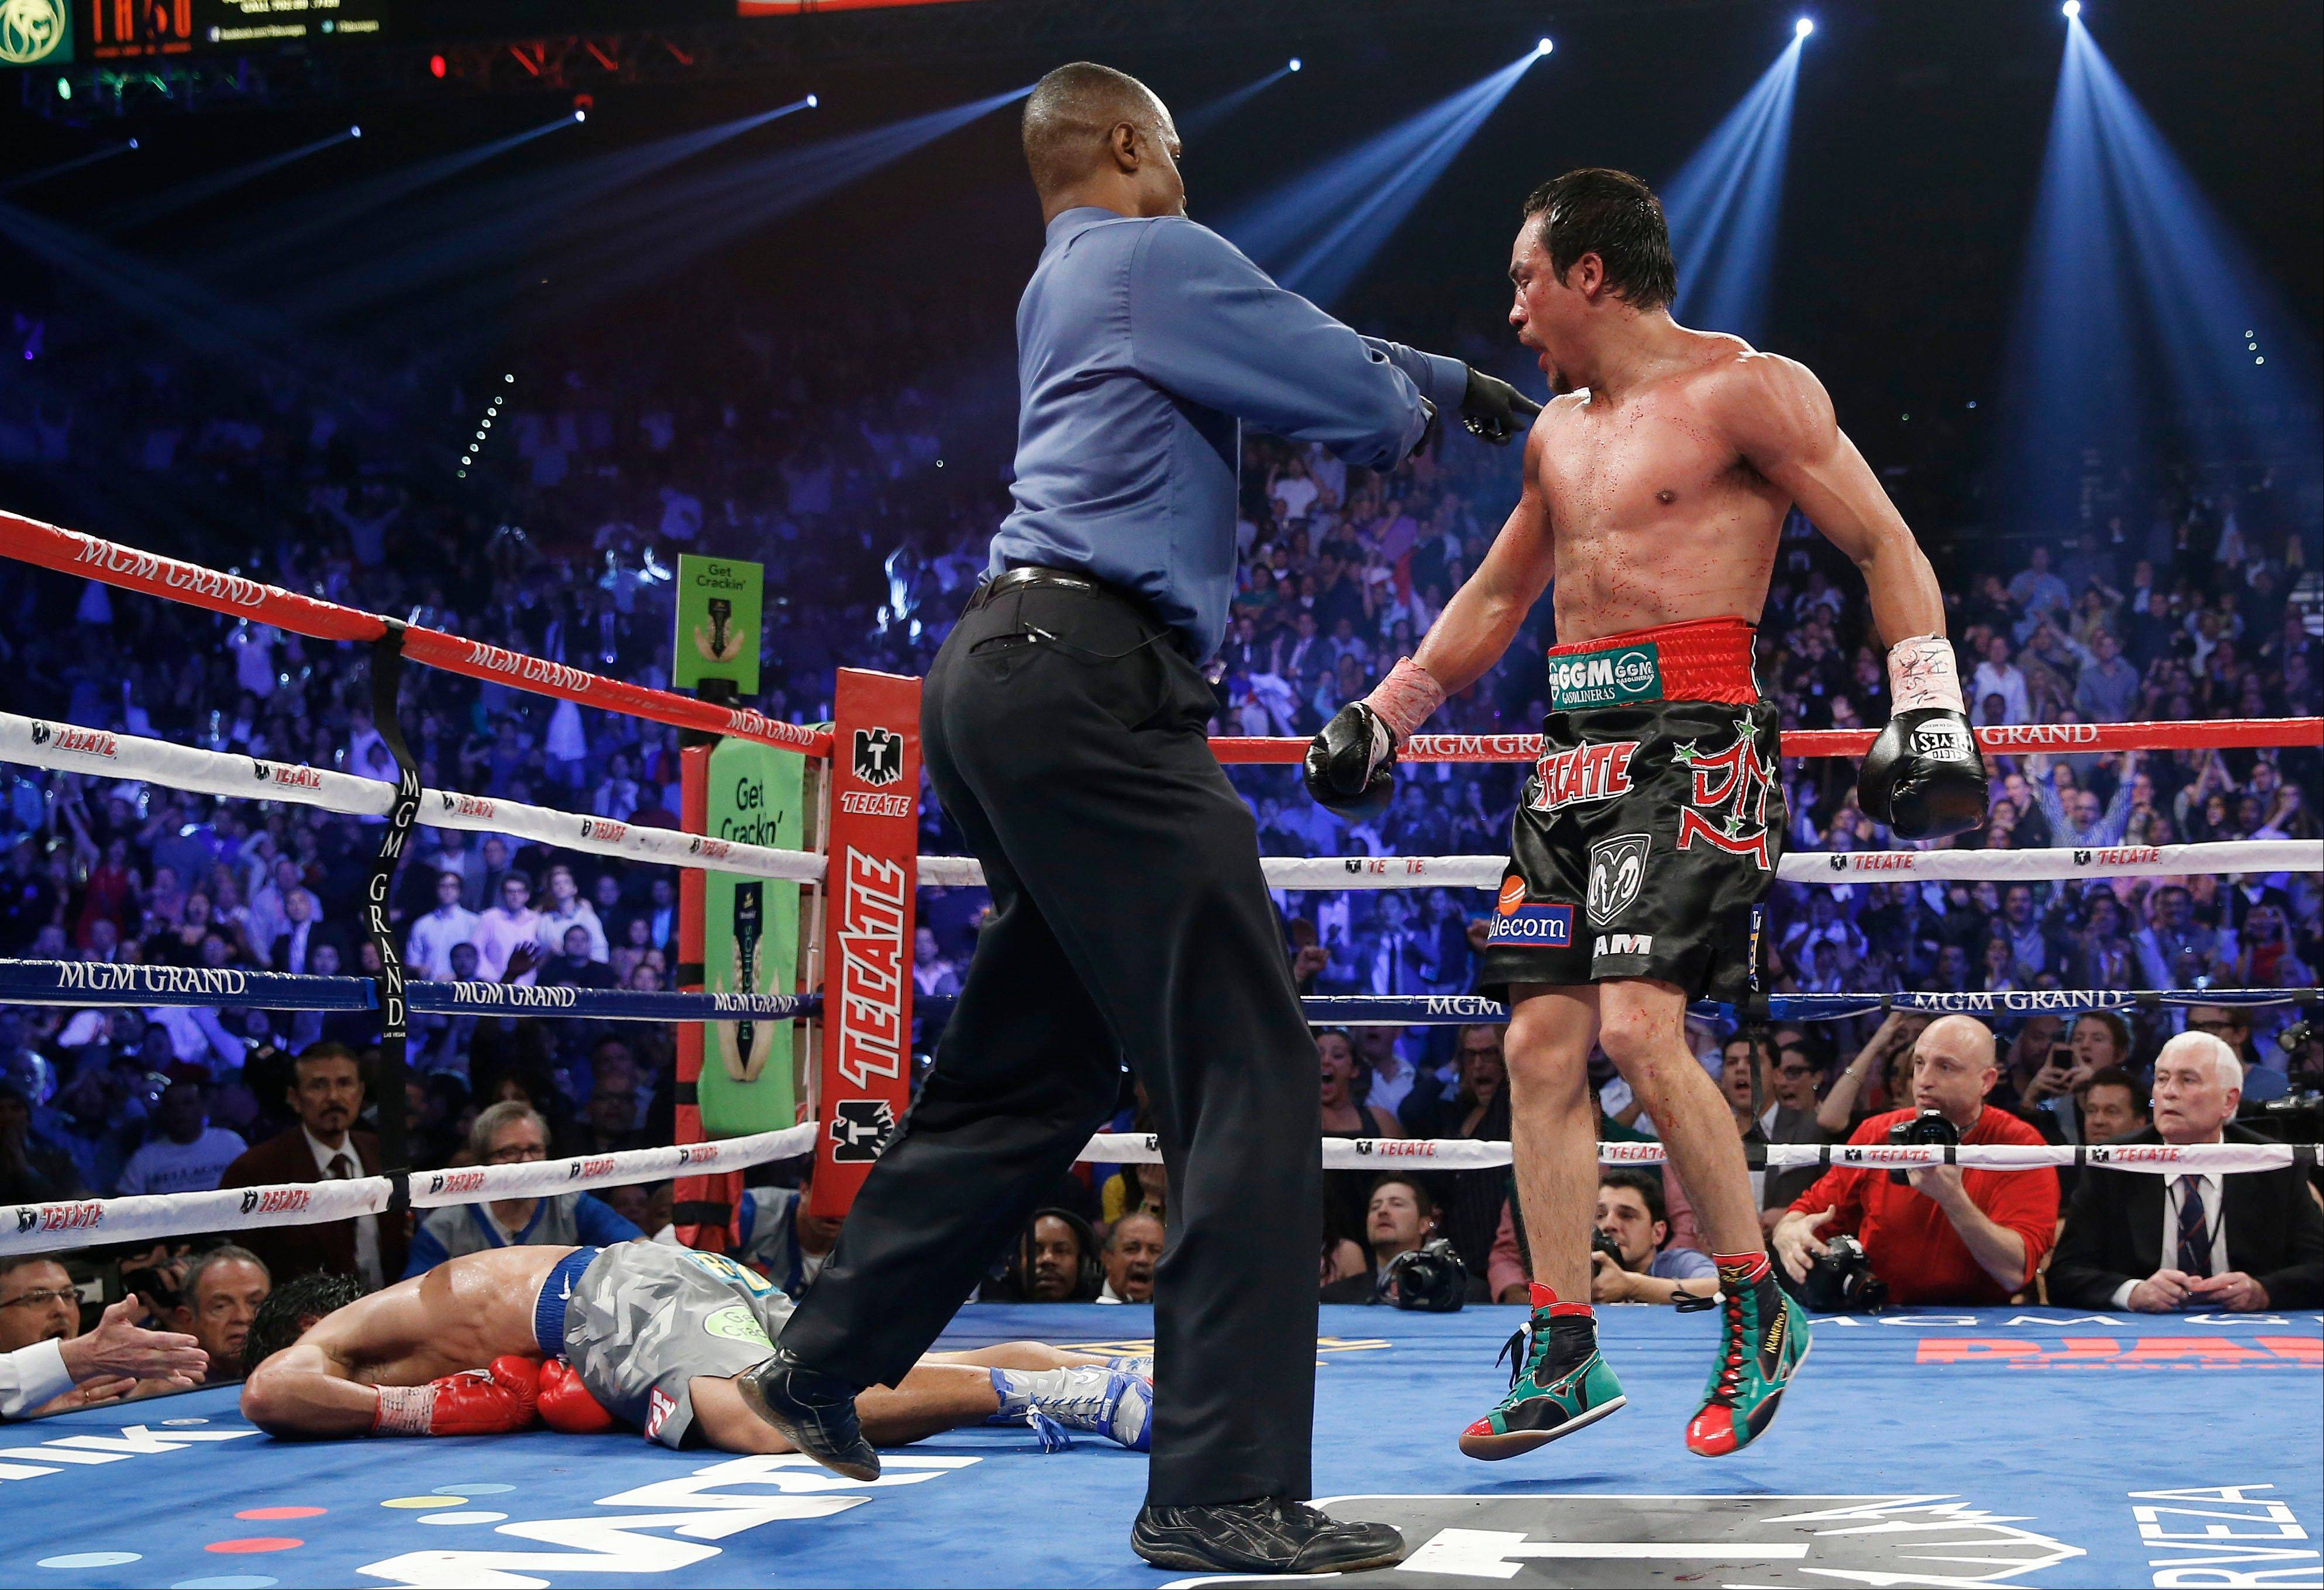 Referee Kenny Bayless, center, sends Juan Manuel Marquez, from Mexico, right, to his corner after he knocked out Manny Pacquiao, from the Philippines, left in the sixth round of their WBO world welterweight fight Saturday, Dec. 8, 2012, in Las Vegas. (AP Photo/Eric Jamison)